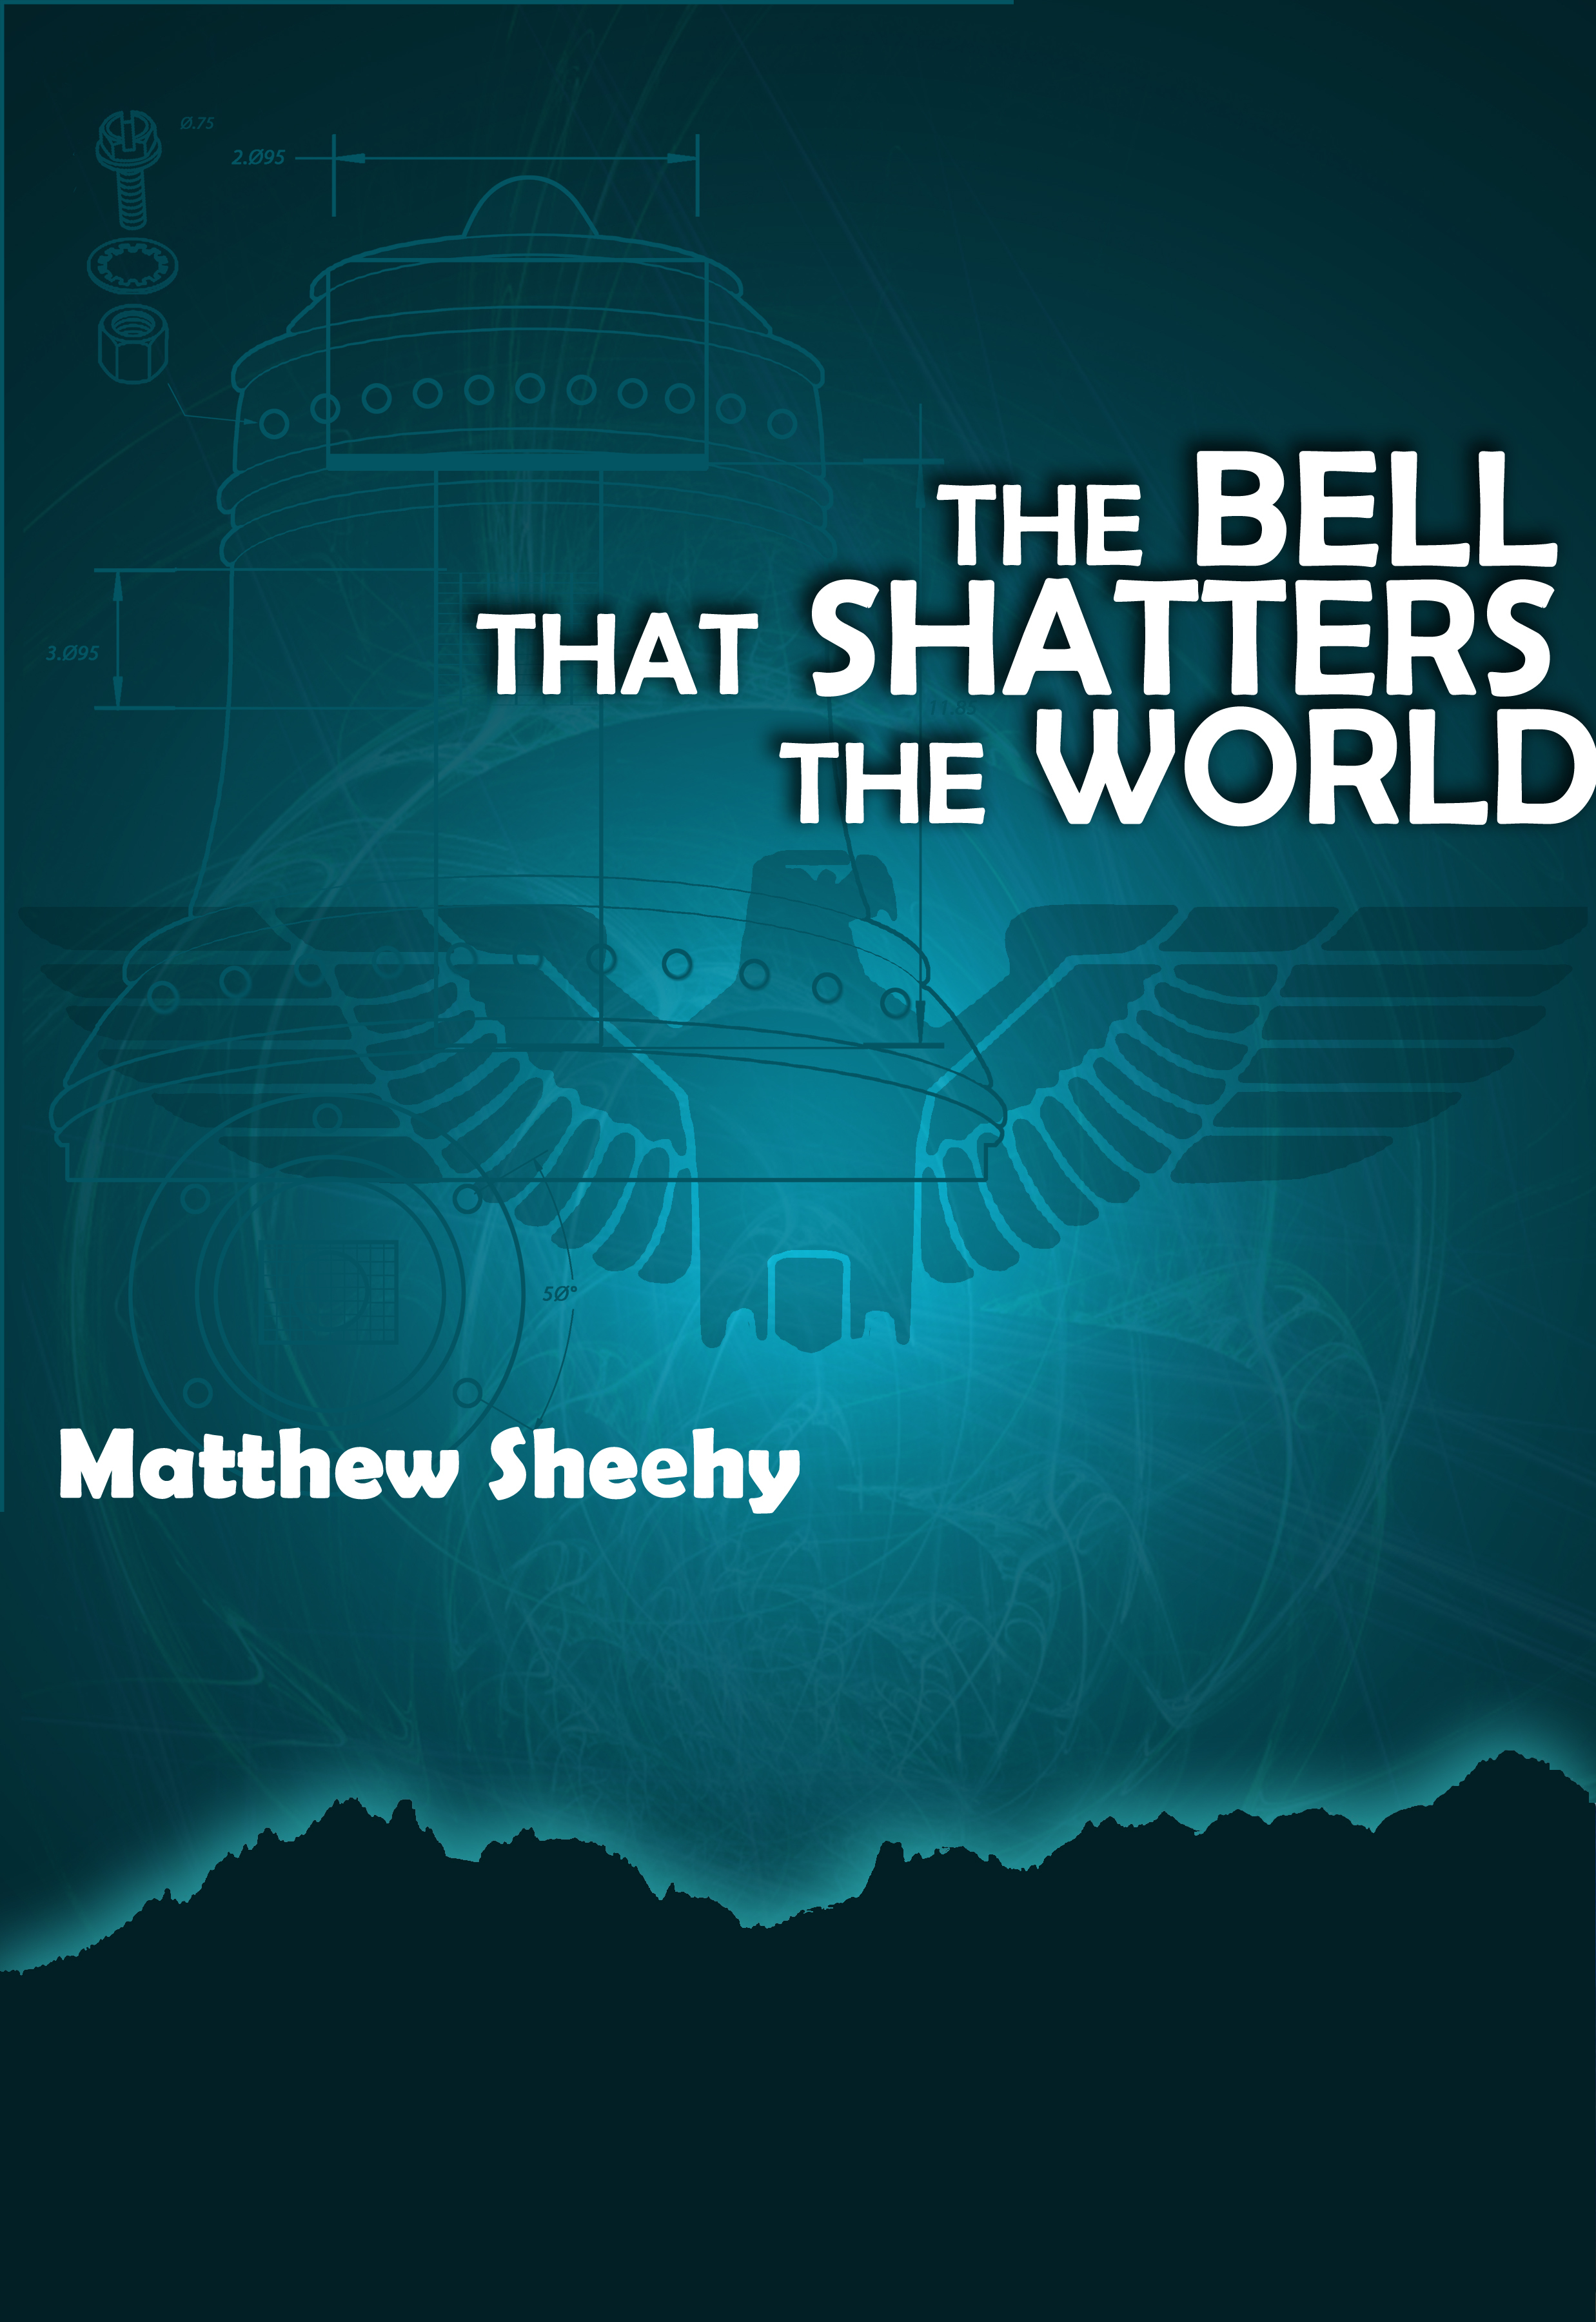 The Bell That Shatters the World Matthew Sheehy